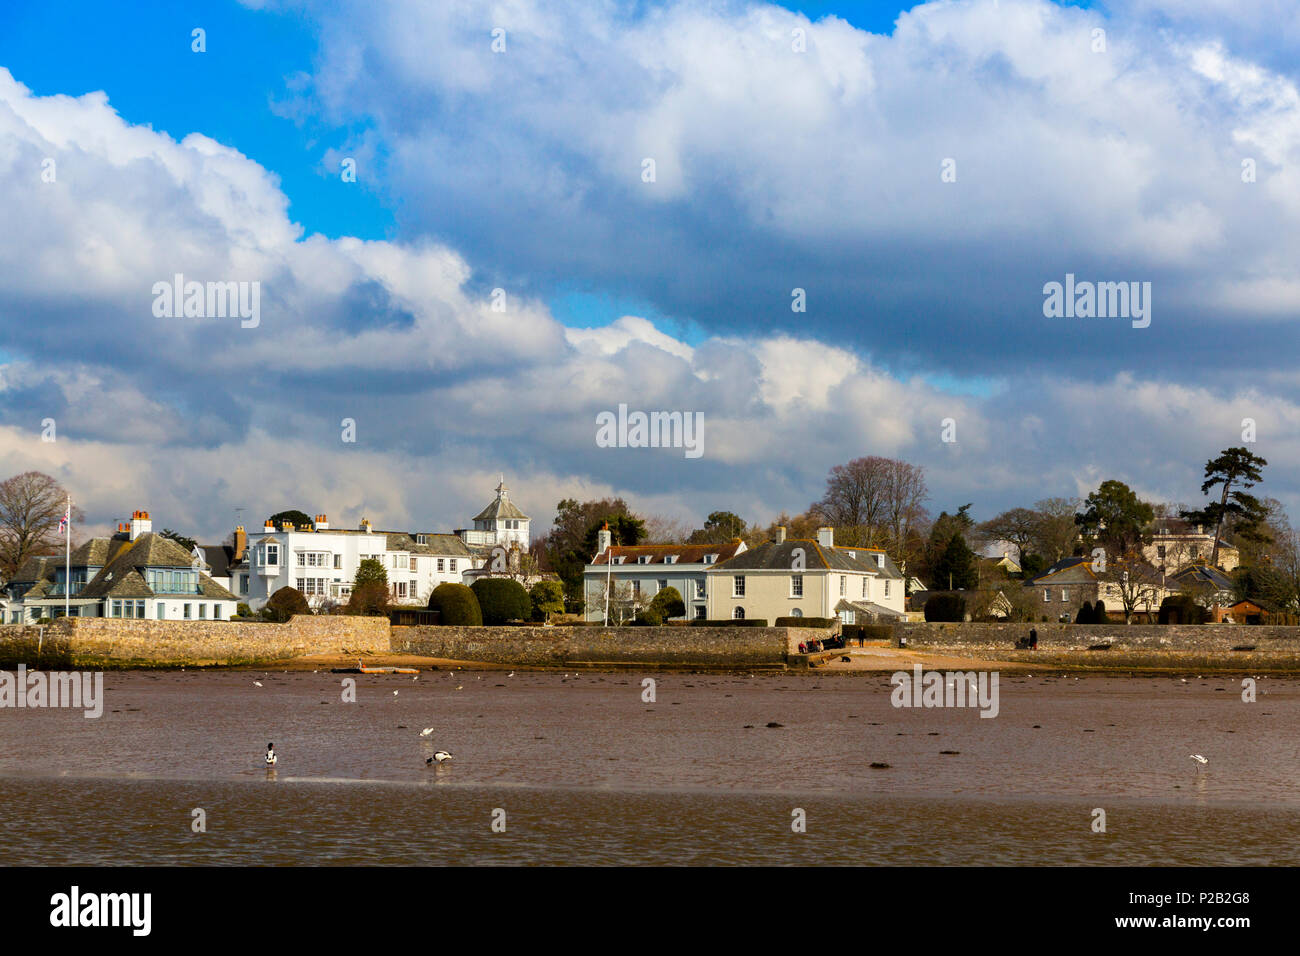 Assorted waterfowl and ducks on the mudflats of the River Exe at Topsham, Devon, England, UK - Stock Image